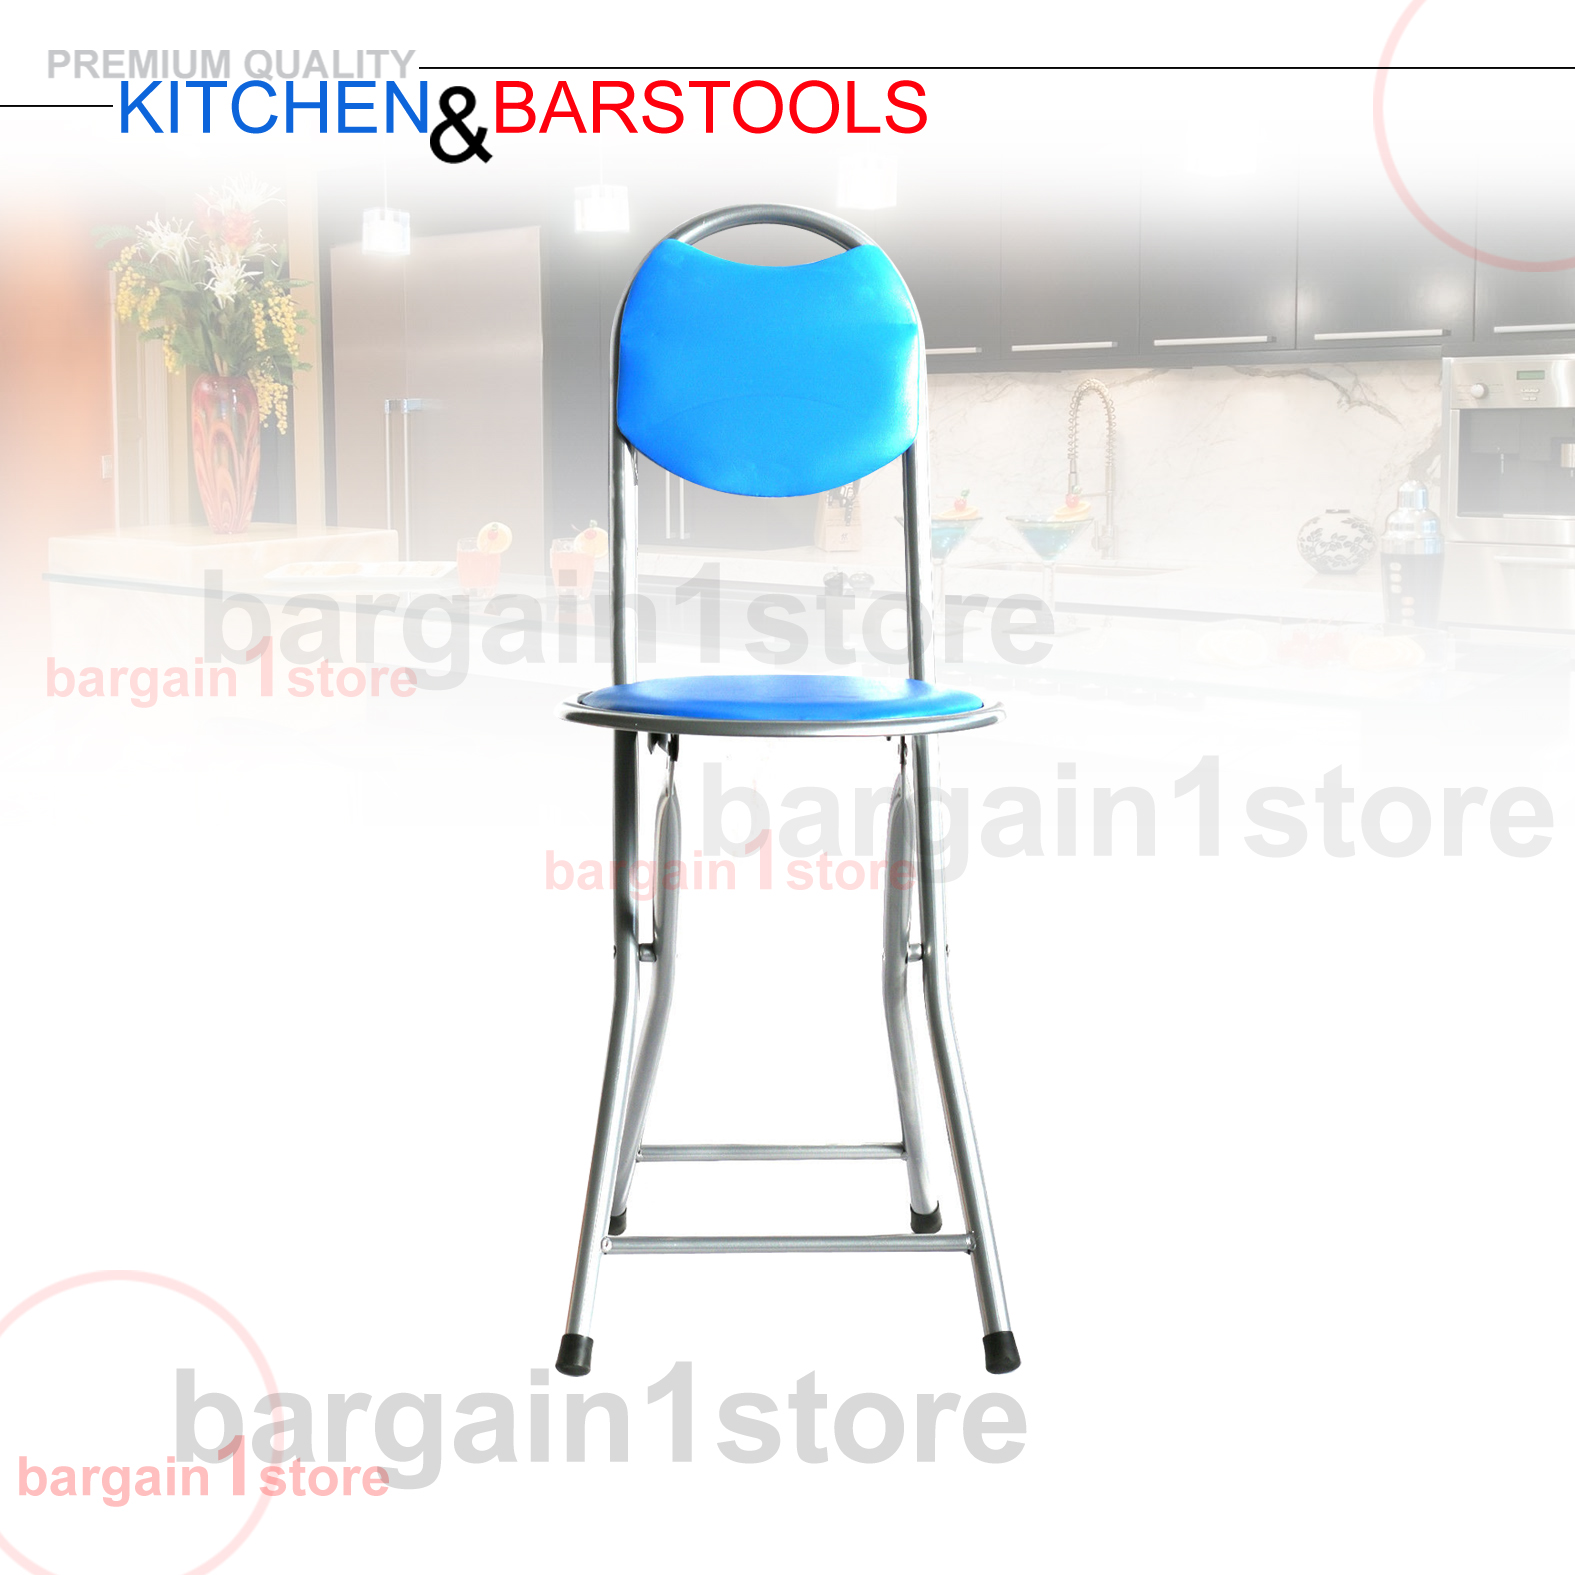 CONTEMPORARY STYLE HOME KITCHEN BAR STOOLS BREAKFAST  : CHAIR01blue from www.ebay.co.uk size 1575 x 1575 jpeg 624kB